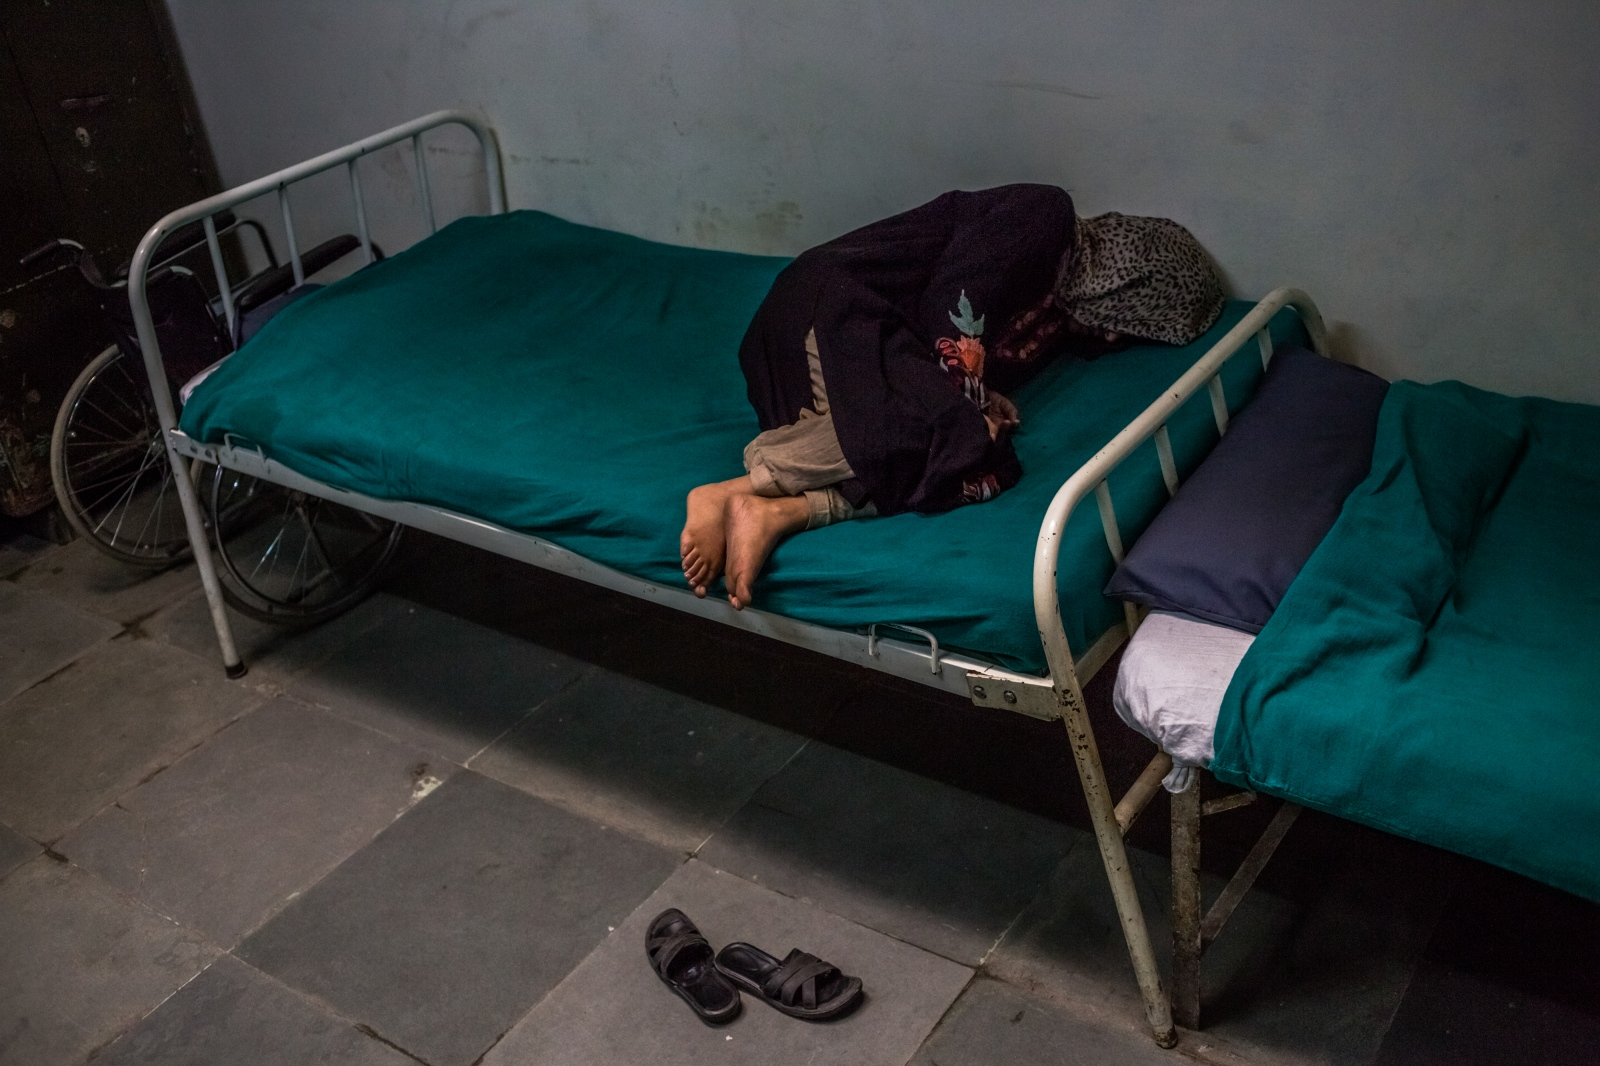 Kashmiri patient Masrat Naz, 45, and who is suffering from symptoms of schizophrenia, lies on a bed as she periodically shouts to medical staff after being brought by relatives to the casualty ward at the Psychiatric Diseases hospital in Srinagar on November 20, 2015.